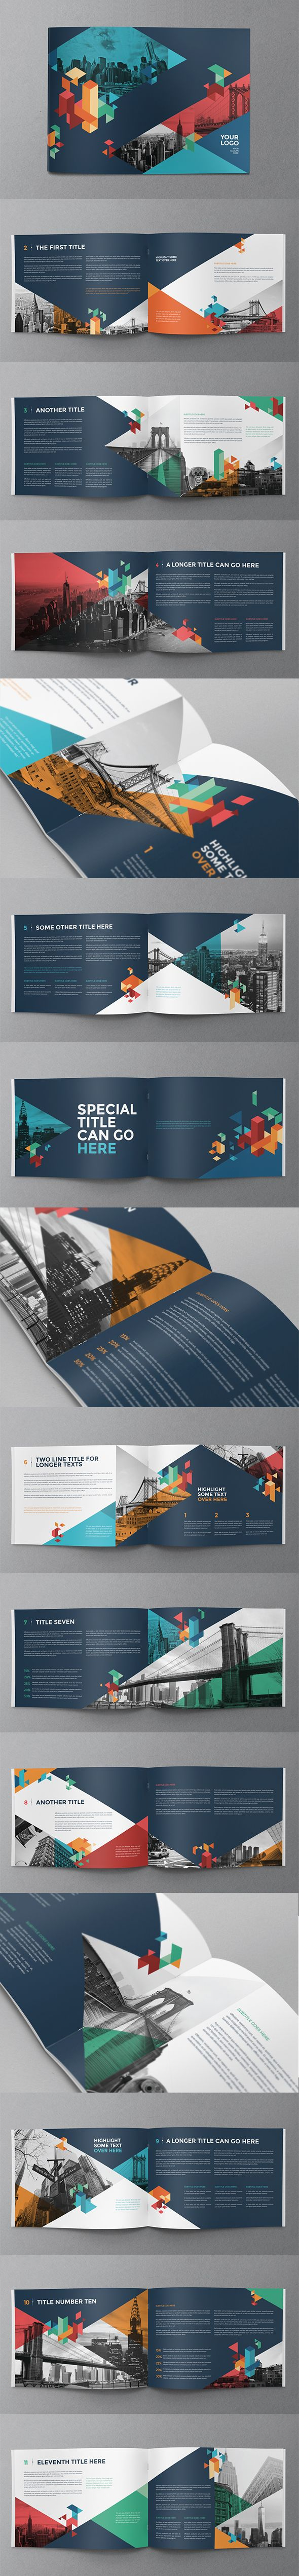 Colorful Blue Brochure. Download here: http://graphicriver.net/item/colorful-blue-brochure/10801871?ref=abradesign #brochure #design